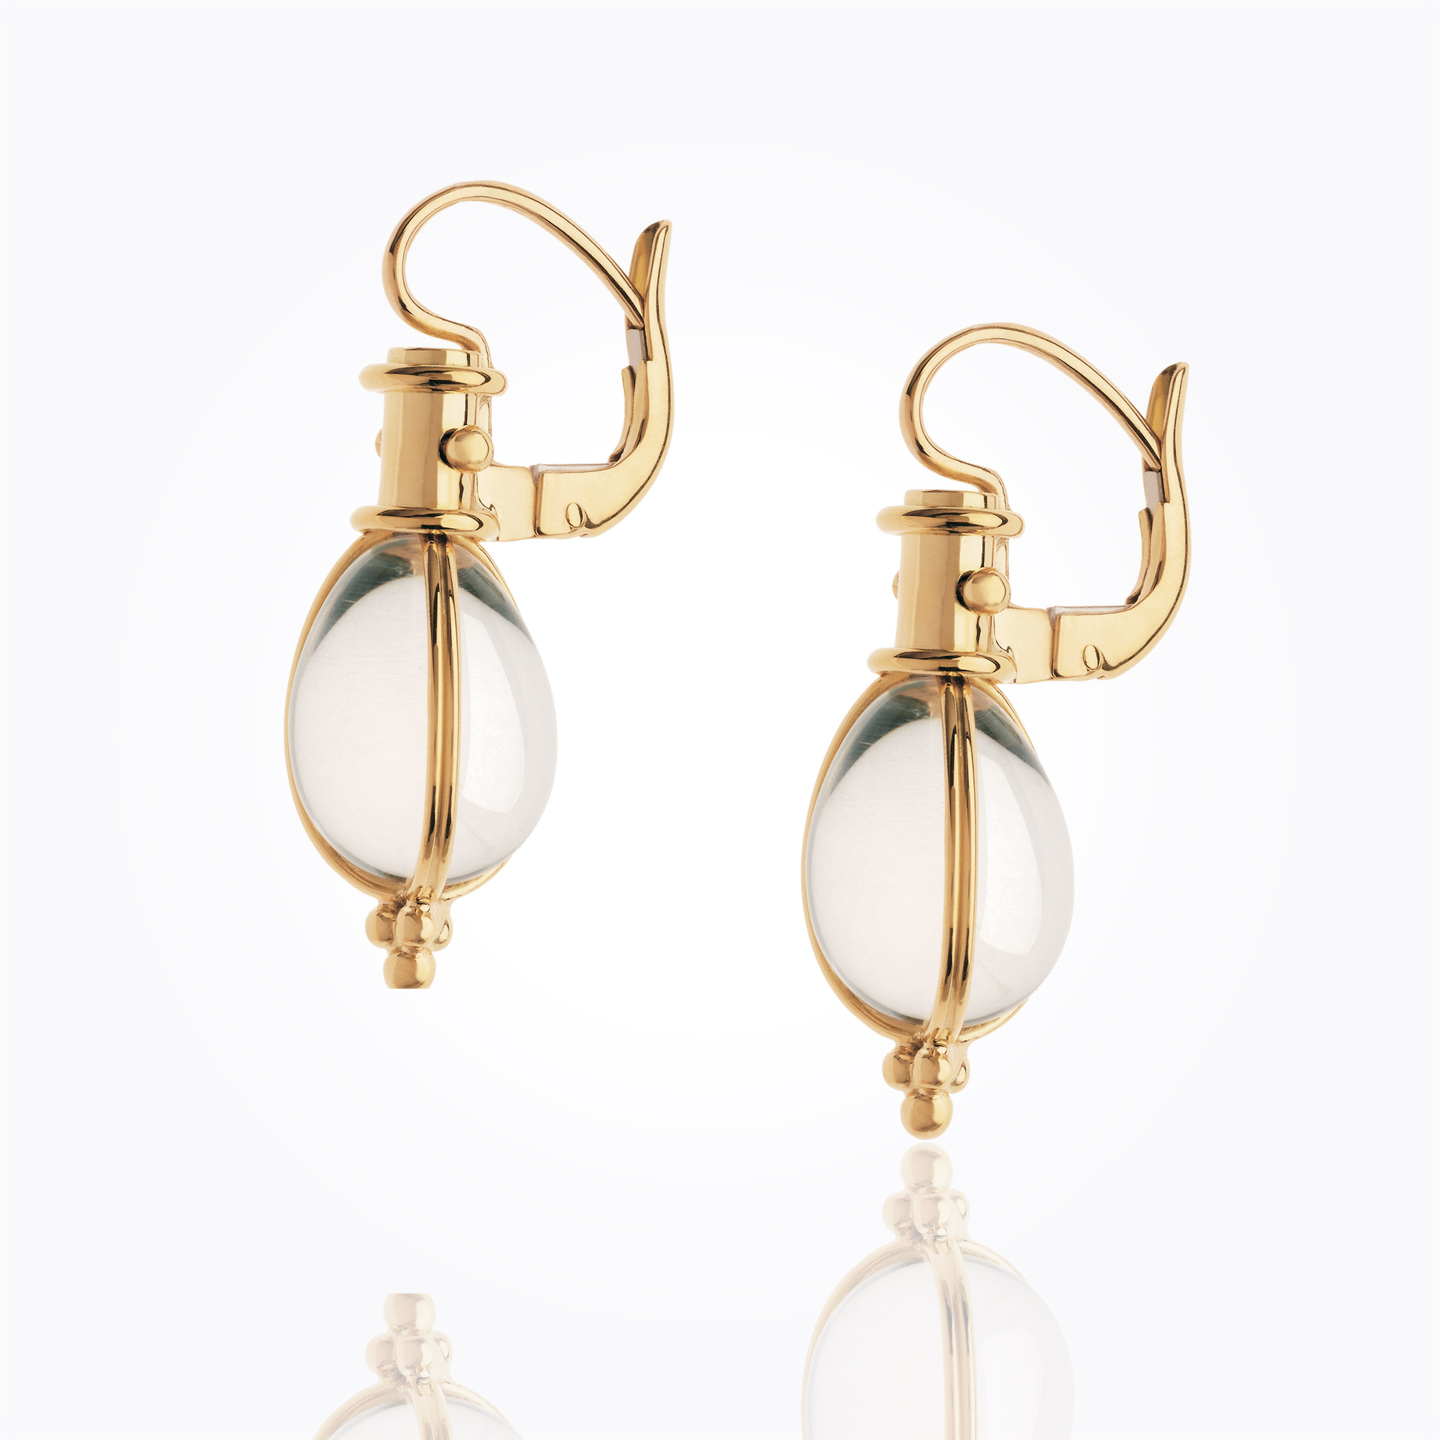 Temple St. Clair 18K Yellow Gold    Gold Earrings with Stones E55800-E9